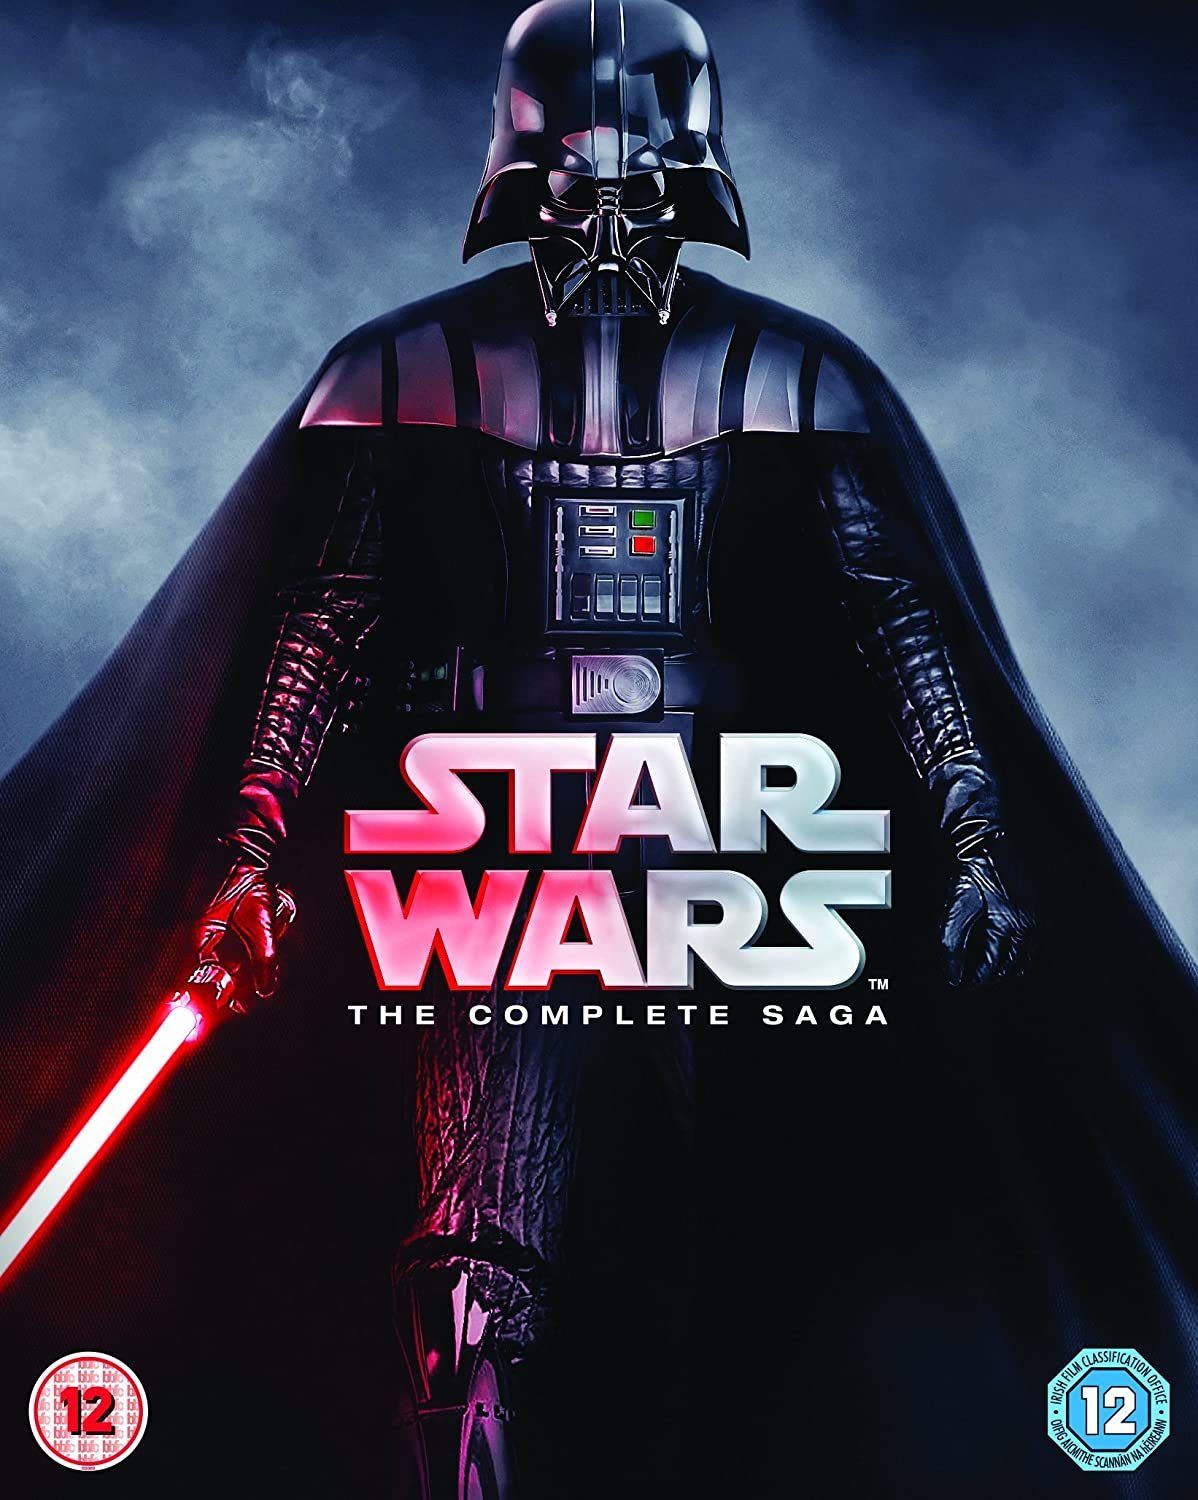 Star Wars: The Complete Saga (2015 Blu Ray)